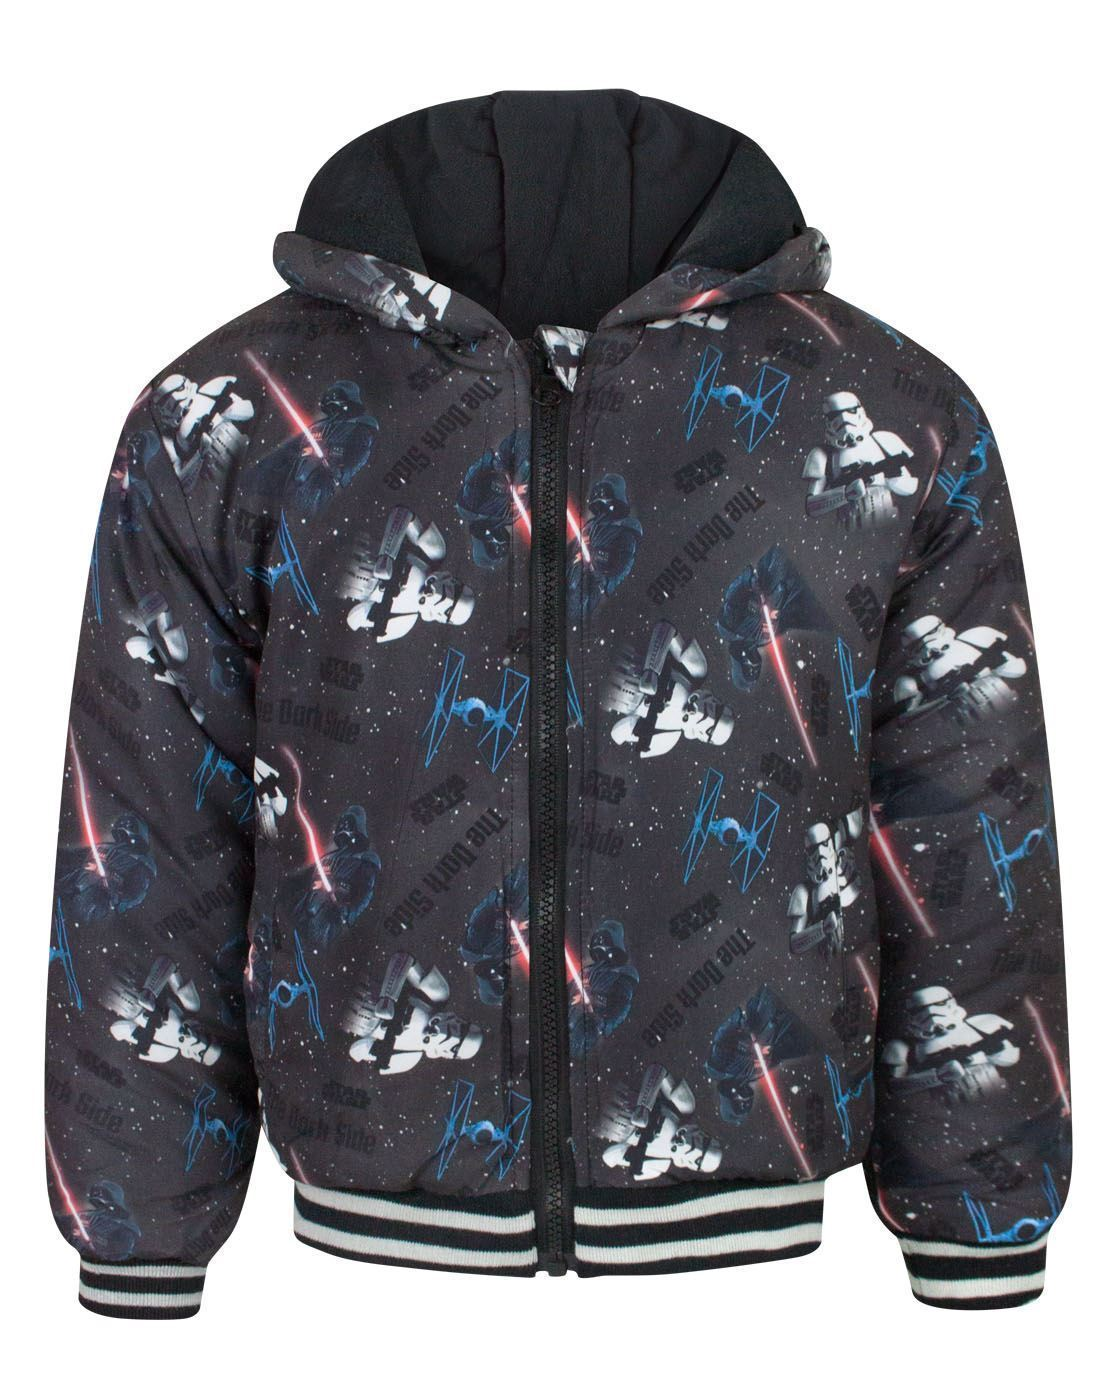 Star Wars Characters Boy's Hooded Coat